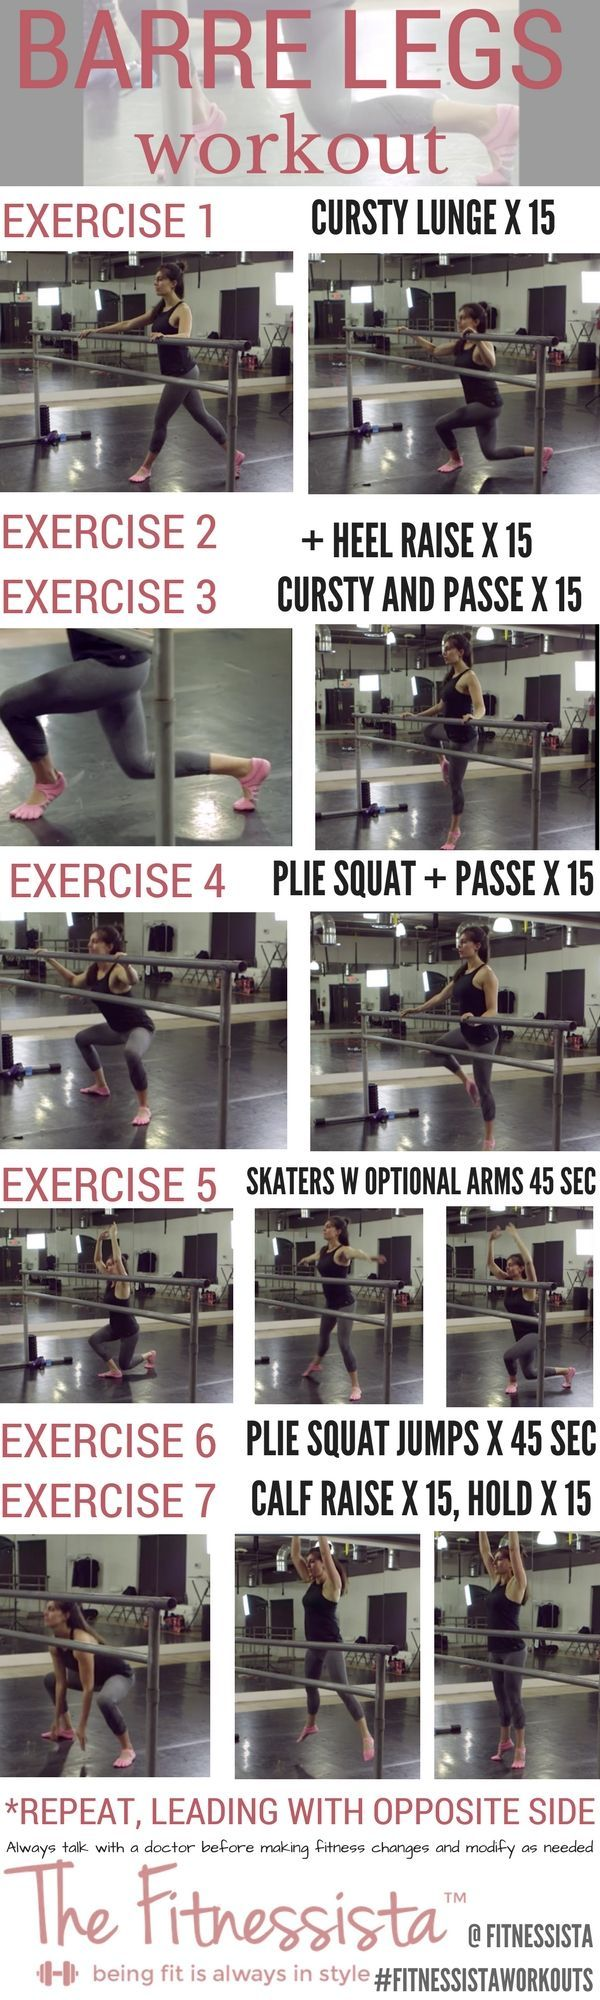 If you love doing barre workouts at home, this barre legs workout is a great one to get your legs shaking and build lean legs. The best part? Zero equipment! Check out the full post for form cues plus a video how-to. Save now for an awesome workout later. http://fitnessista.com